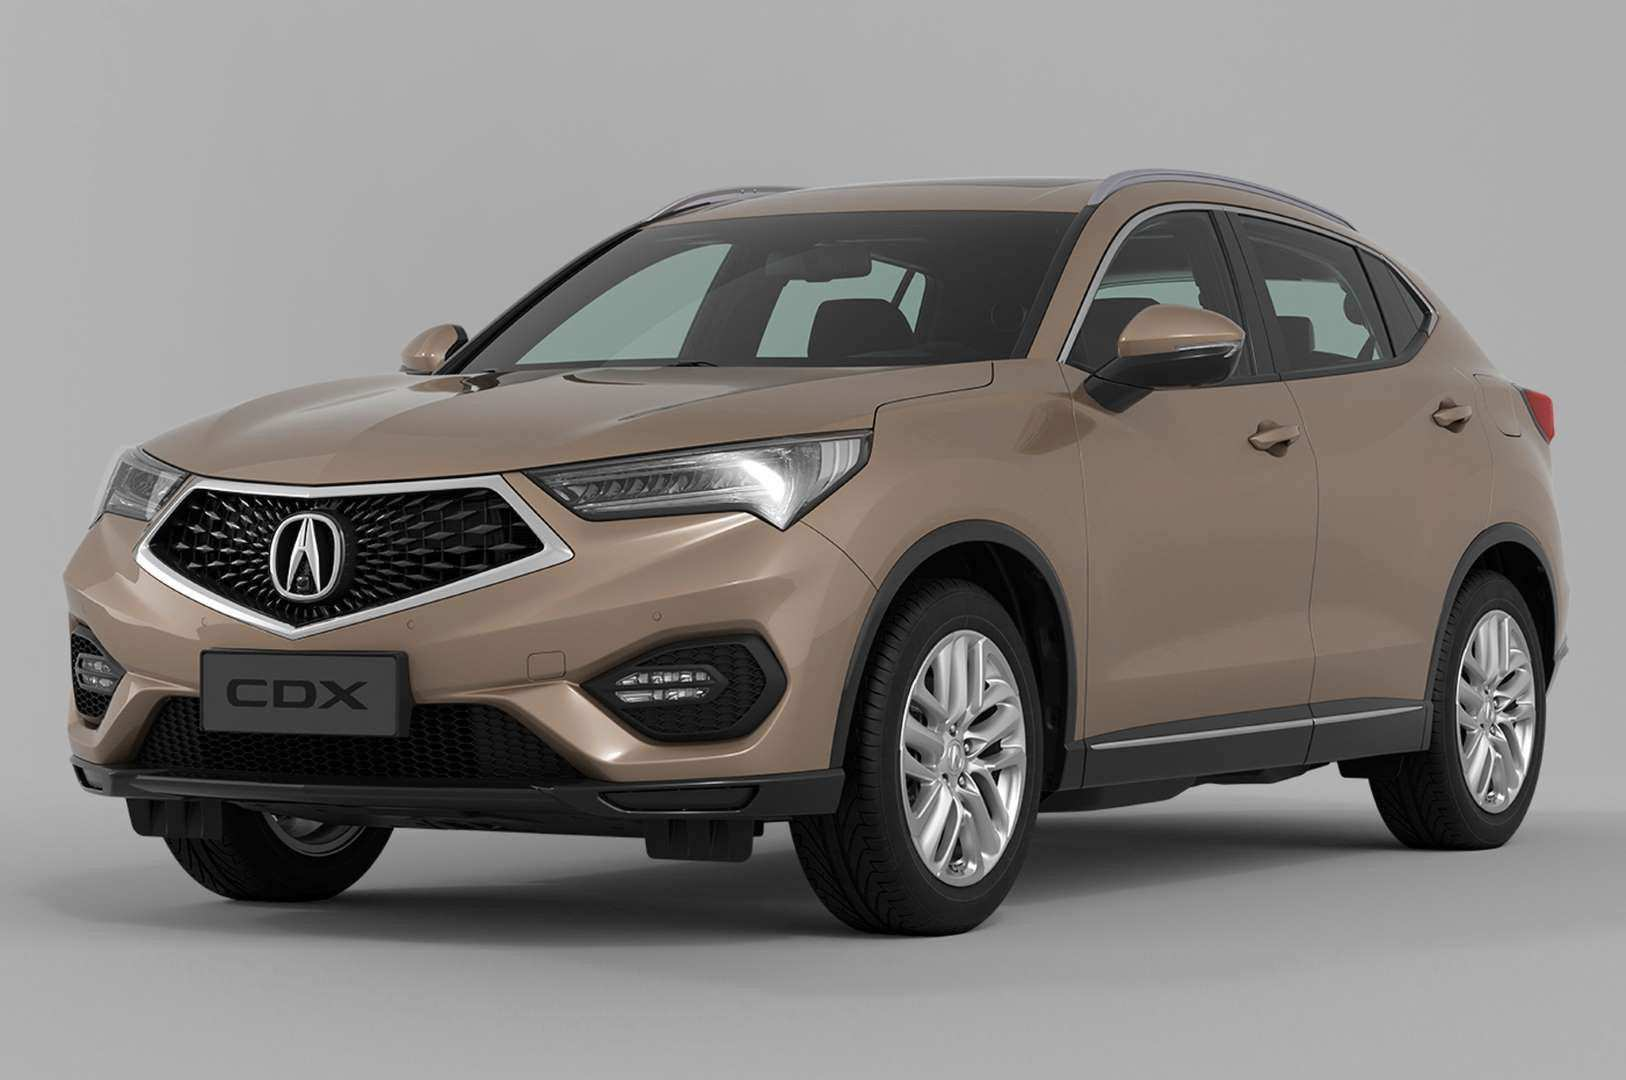 79 All New Images Of 2020 Acura Mdx Redesign and Concept by Images Of 2020 Acura Mdx